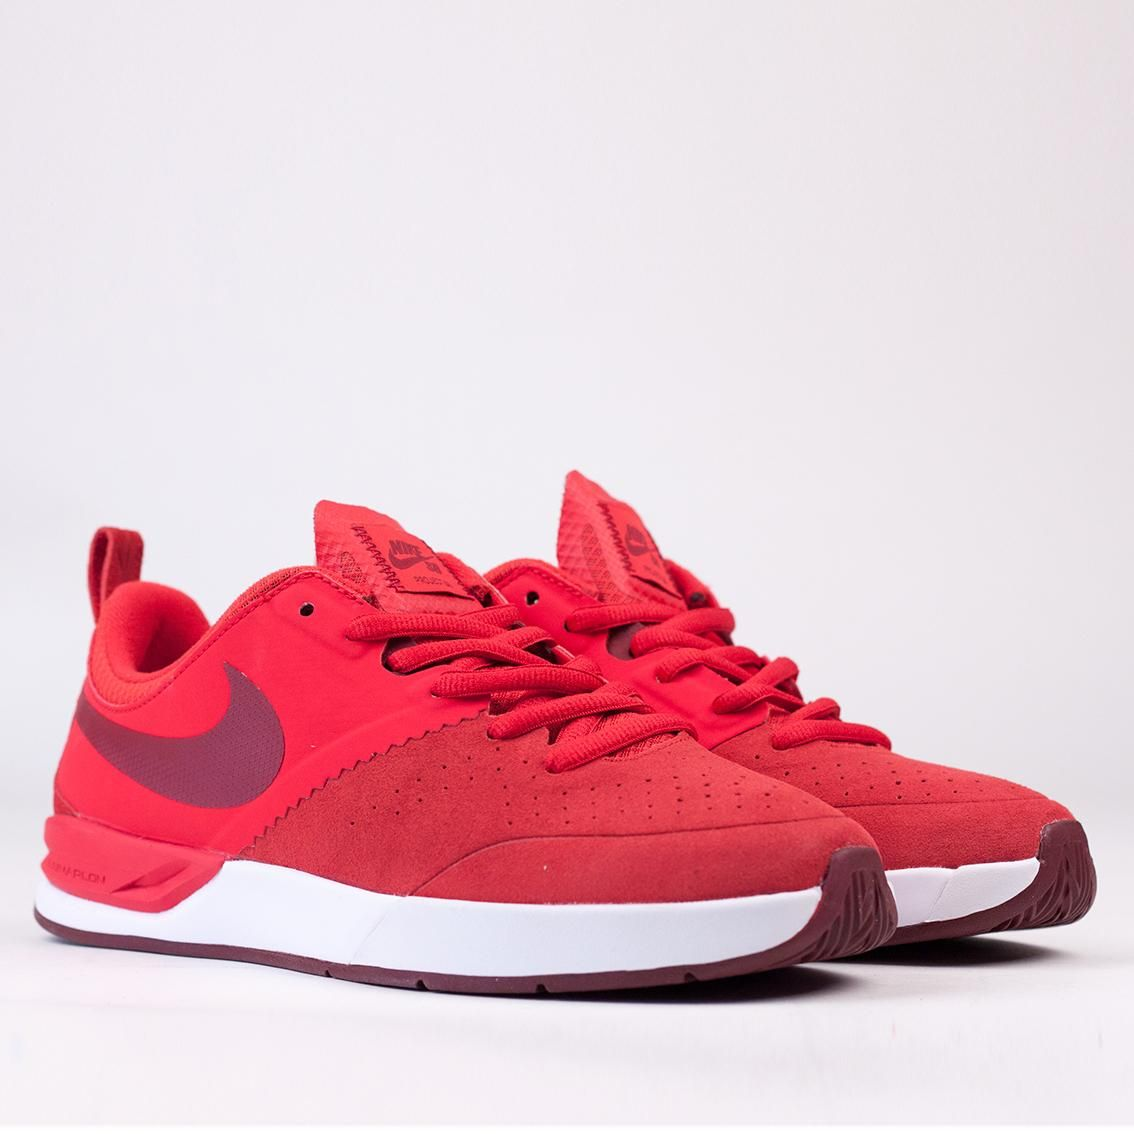 ... Nike SB Project BA - University Red White Chianti ... 81e2c00c8eb6